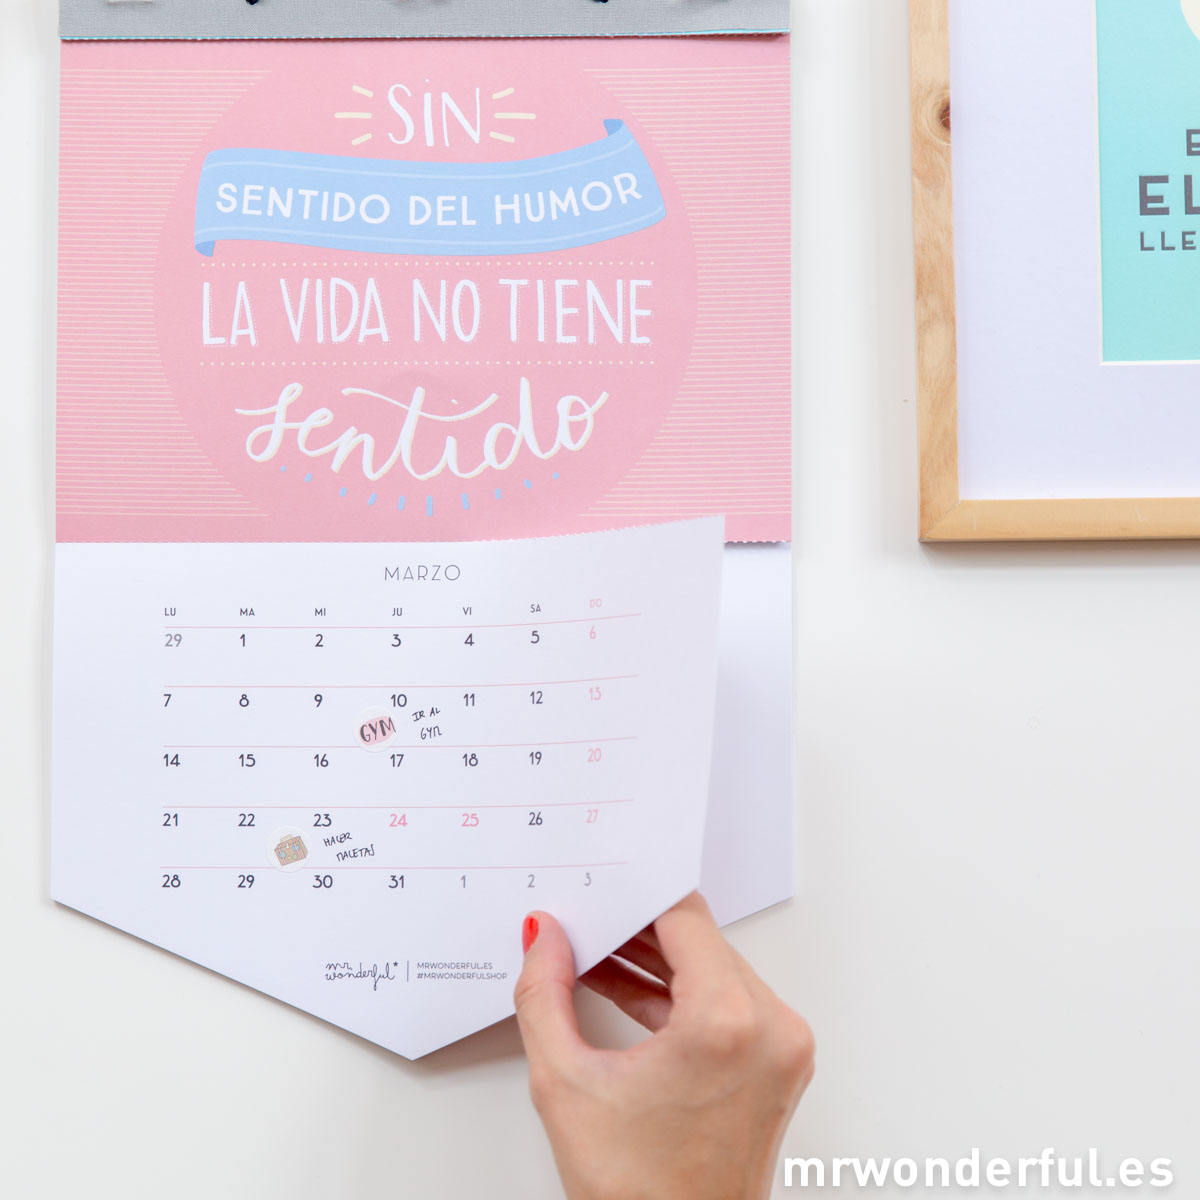 mrwonderful_WOA02929_8436547193646_Calendario-Pared-2015-2016-58